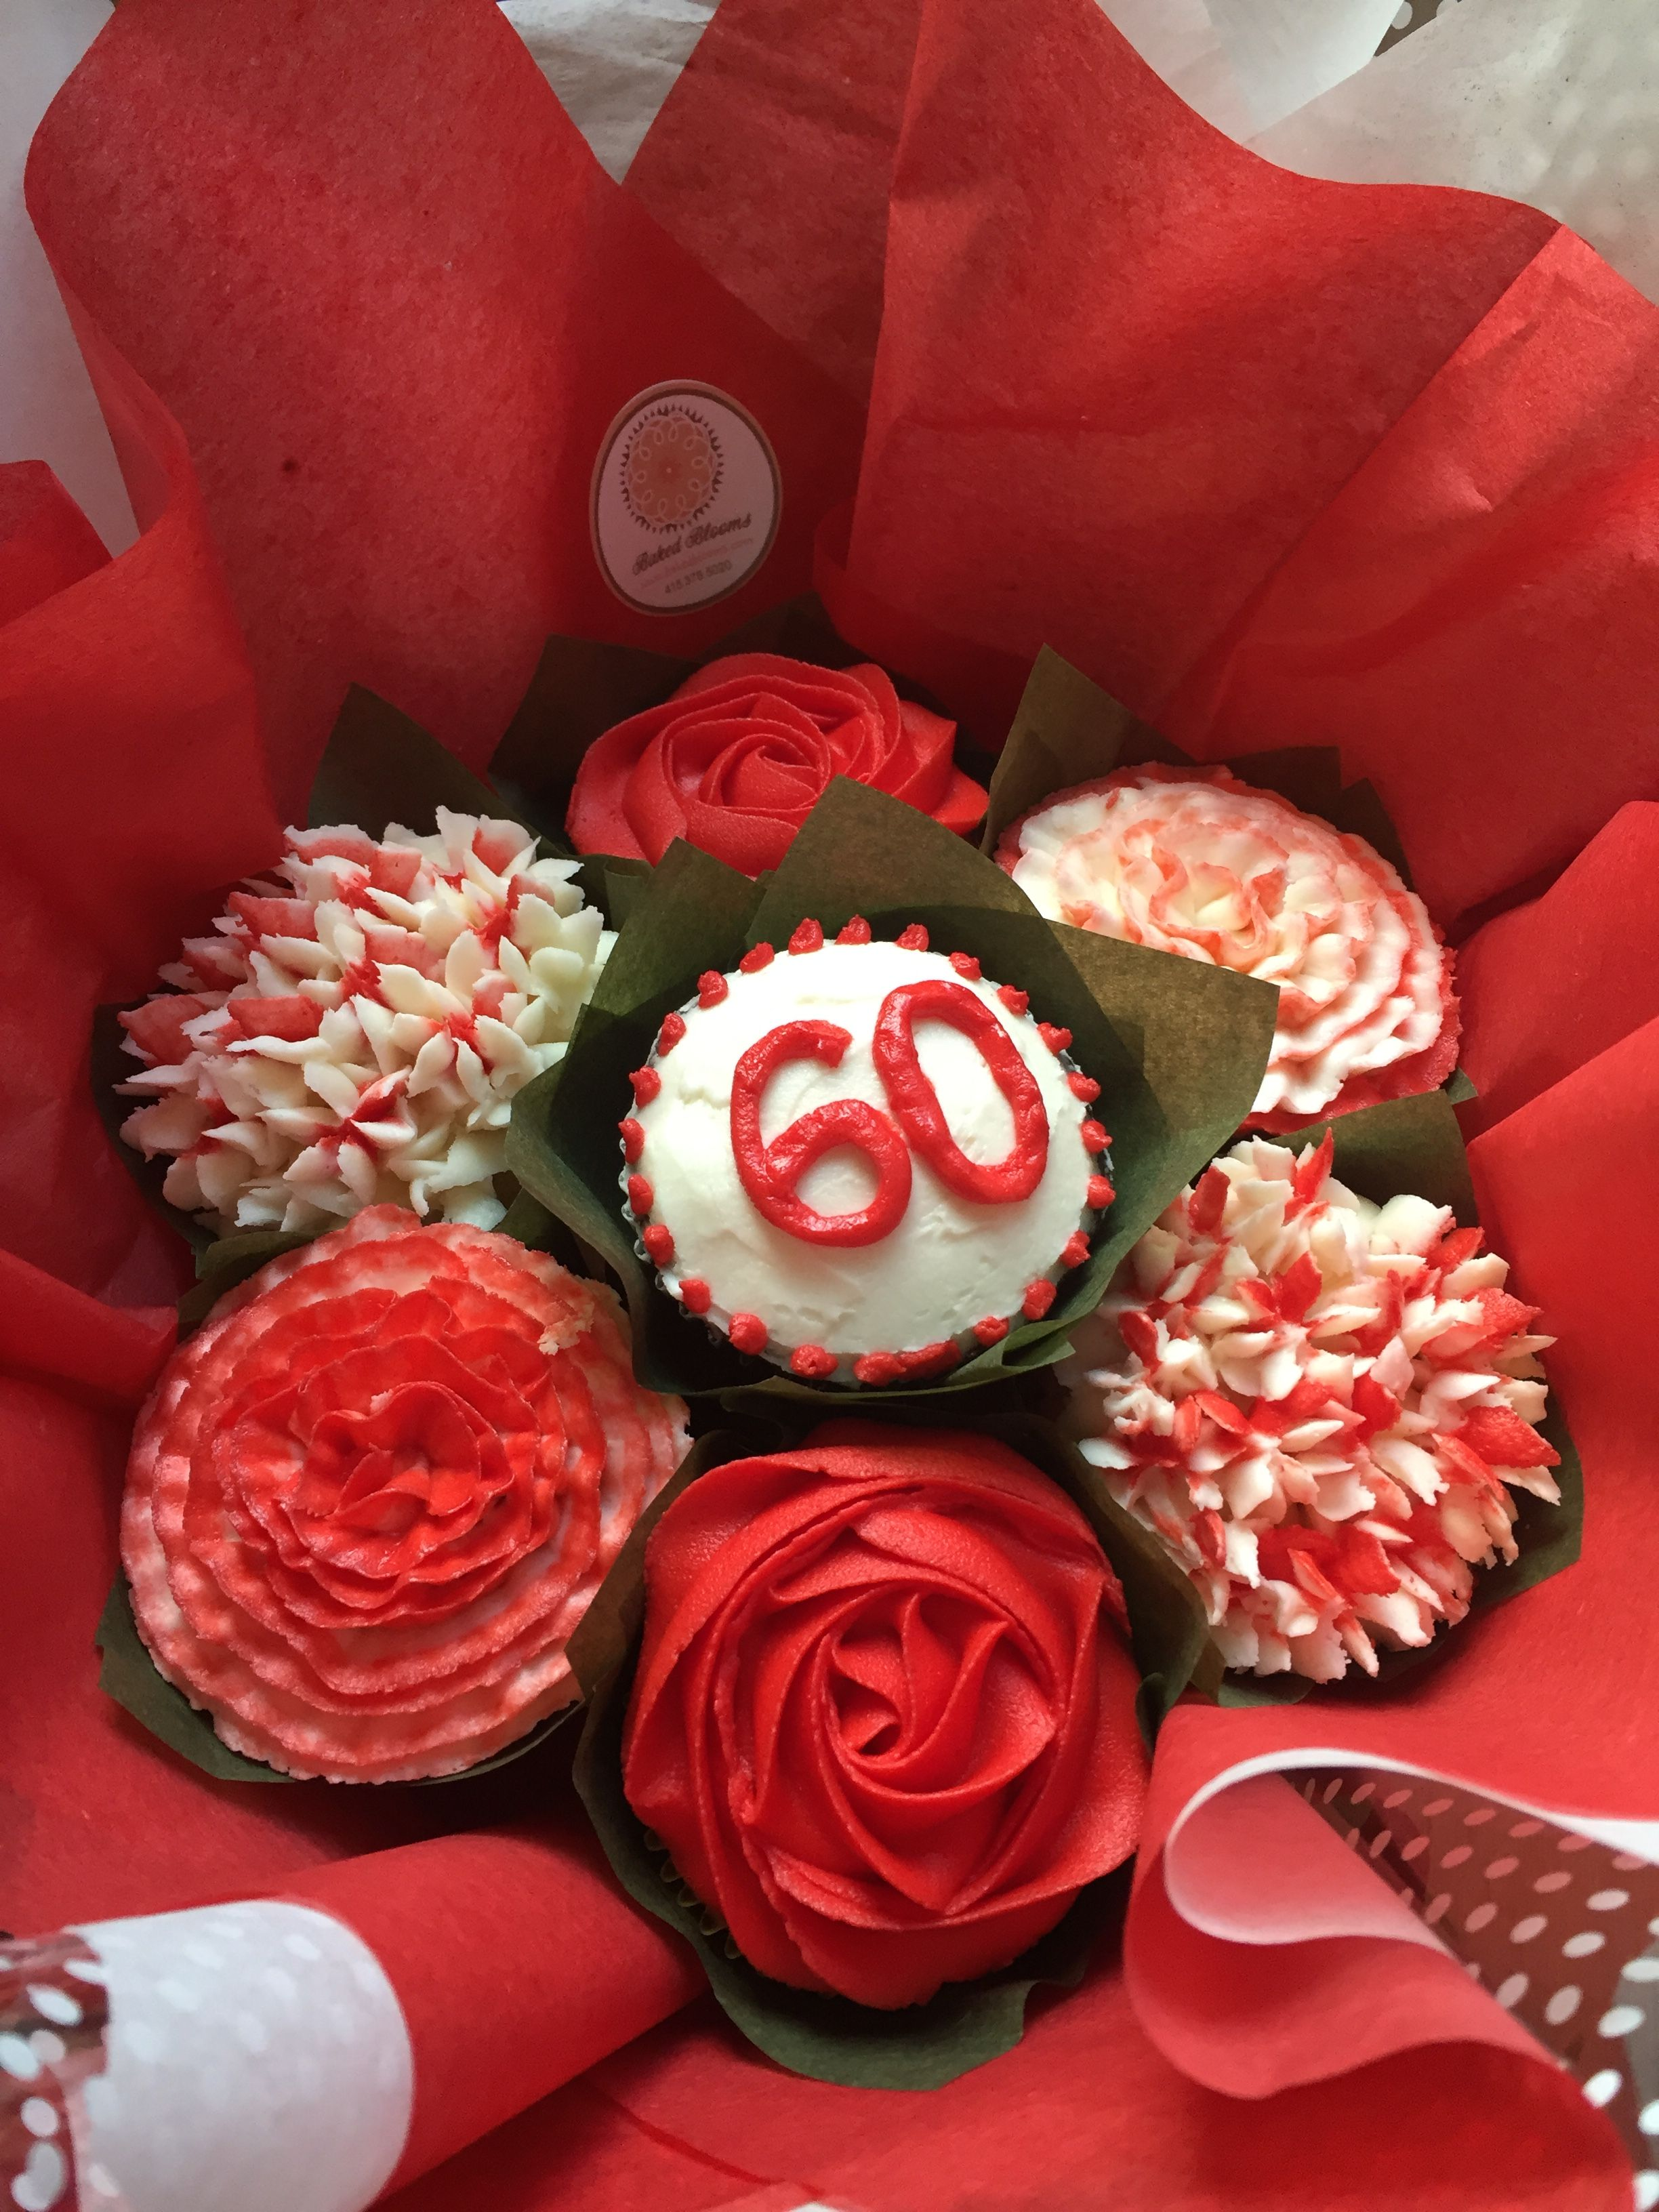 60th birthday cupcake bouquet www.bakedblooms.com   Baked Blooms ...